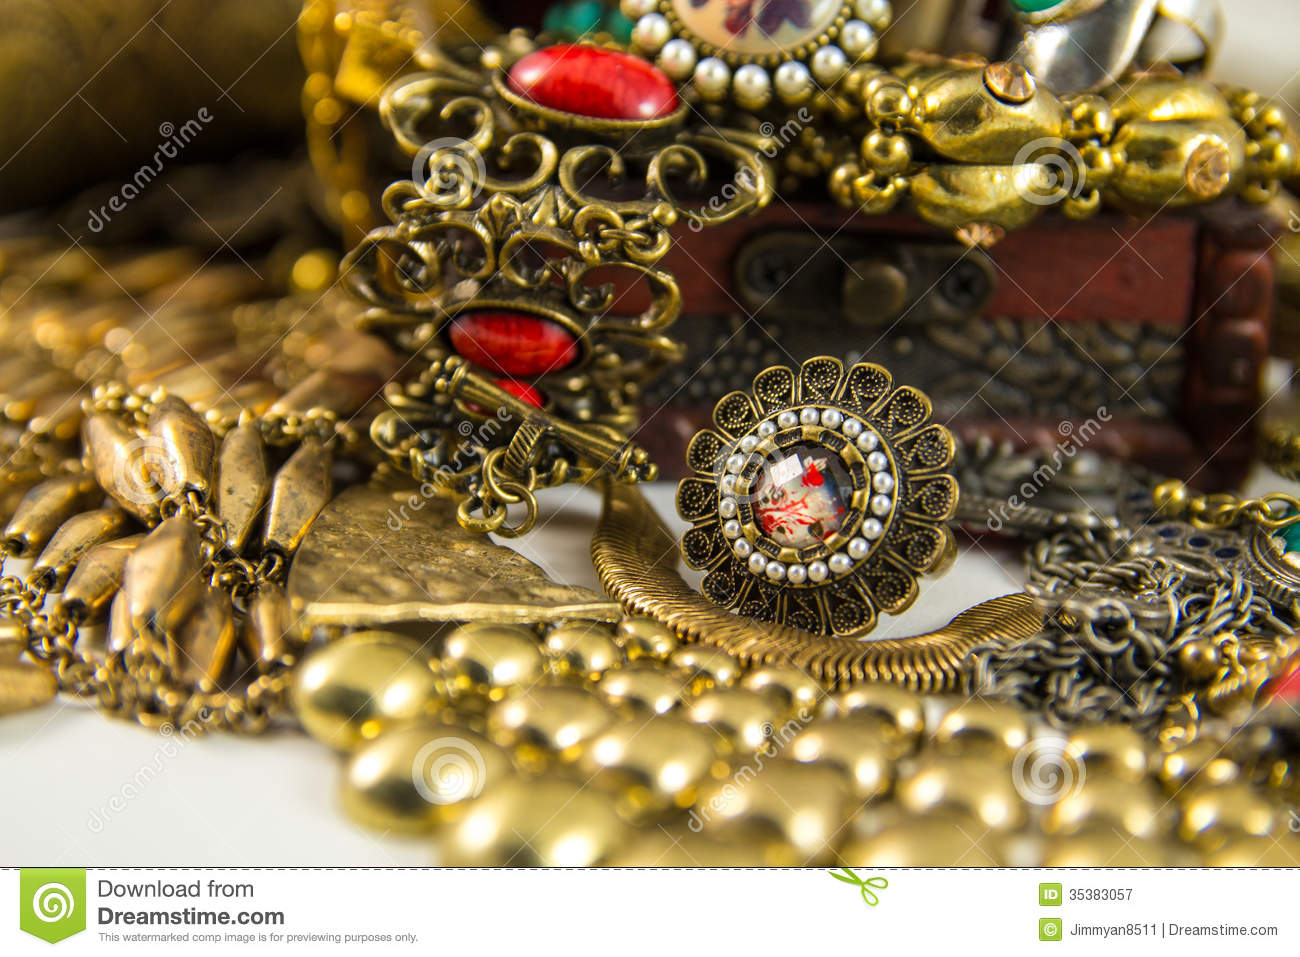 Treasure Chest stock image. Image of treasure, necklace ...